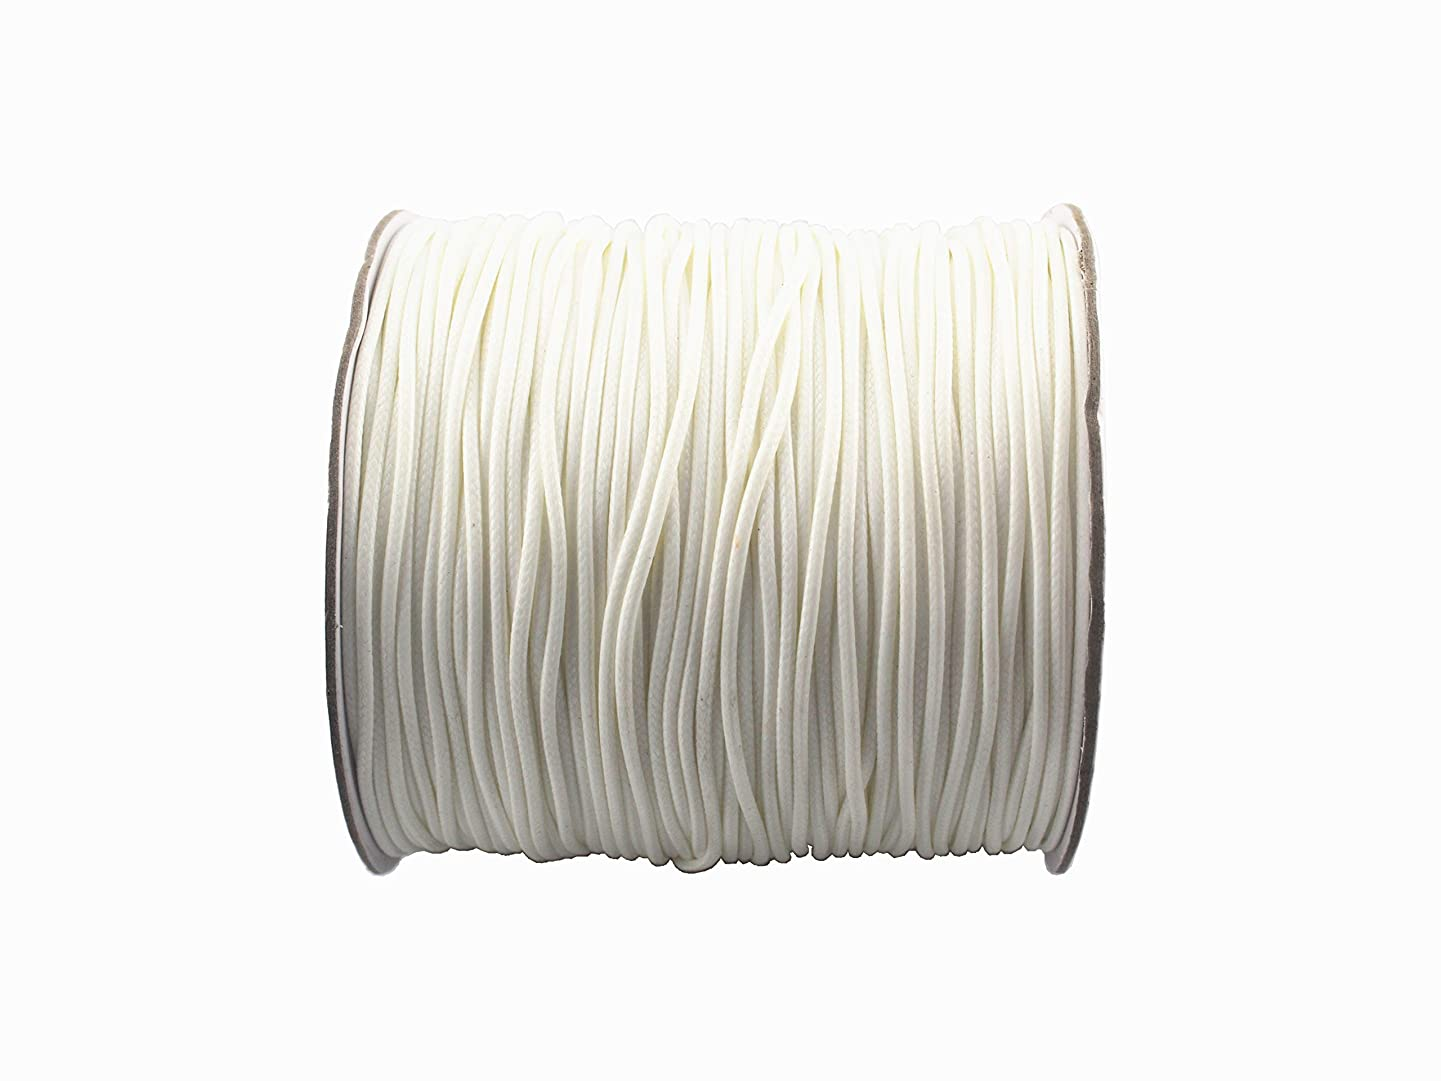 QIANHAILIZZ 200 Yards 1.5 mm Waxed Jewelry Making Cord Waxed Beading String Craft DIY Thread (White)